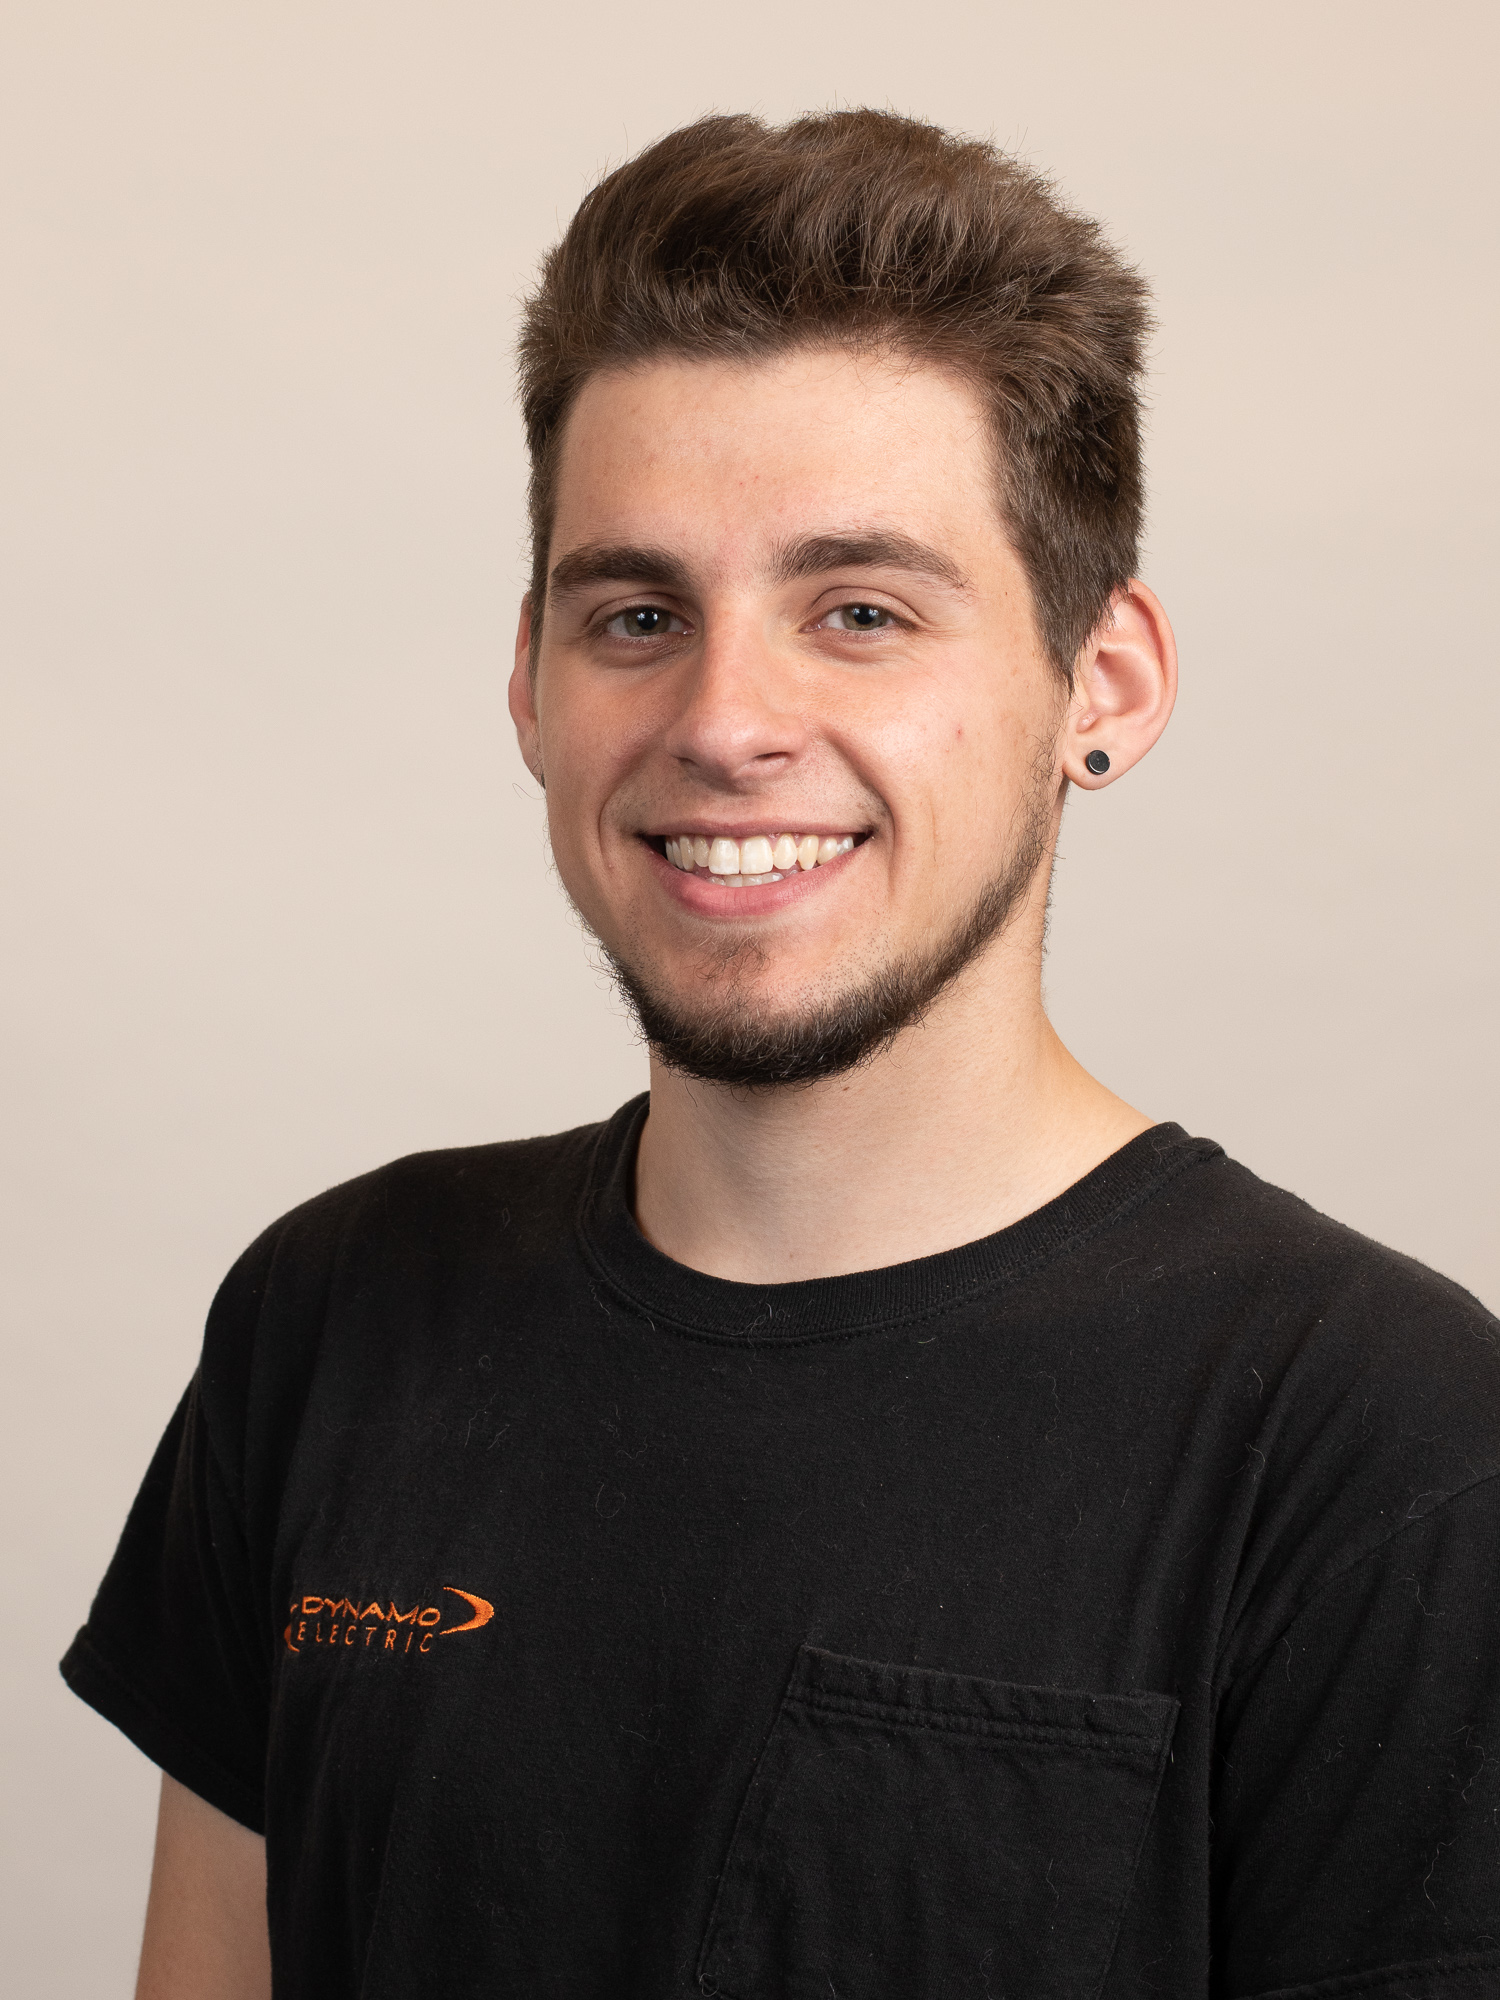 Our Team: Dave, Electrician